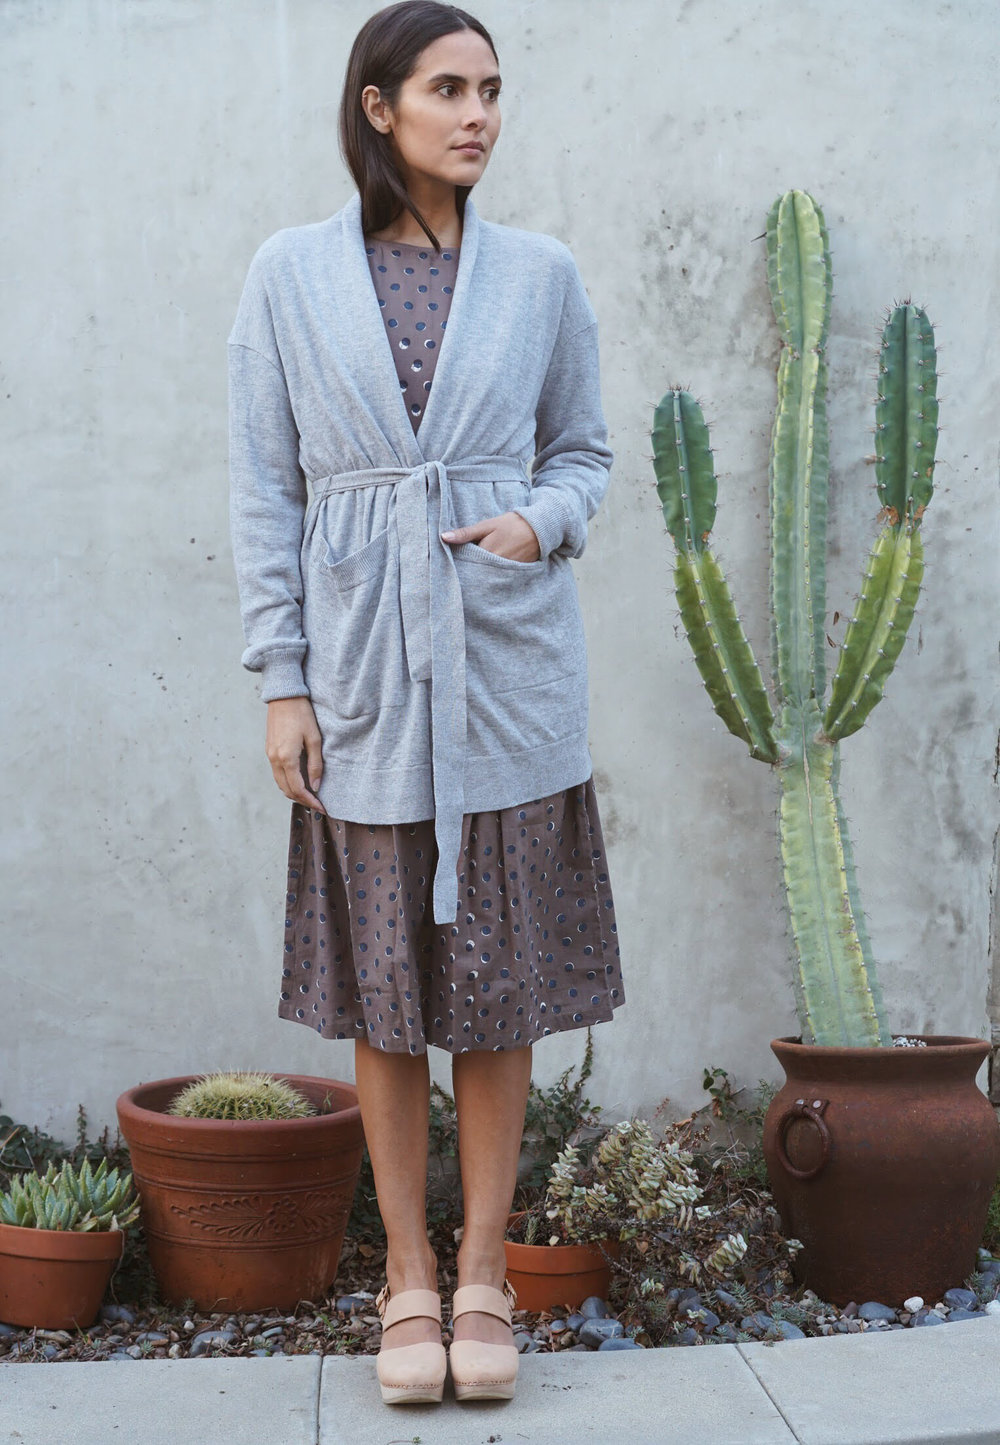 Kopal  Kuku Dress in Block Polka +  Maiyet  Wrap Cardigan in Grey +   Zuzii   Closed Toe Clogs in Natural.